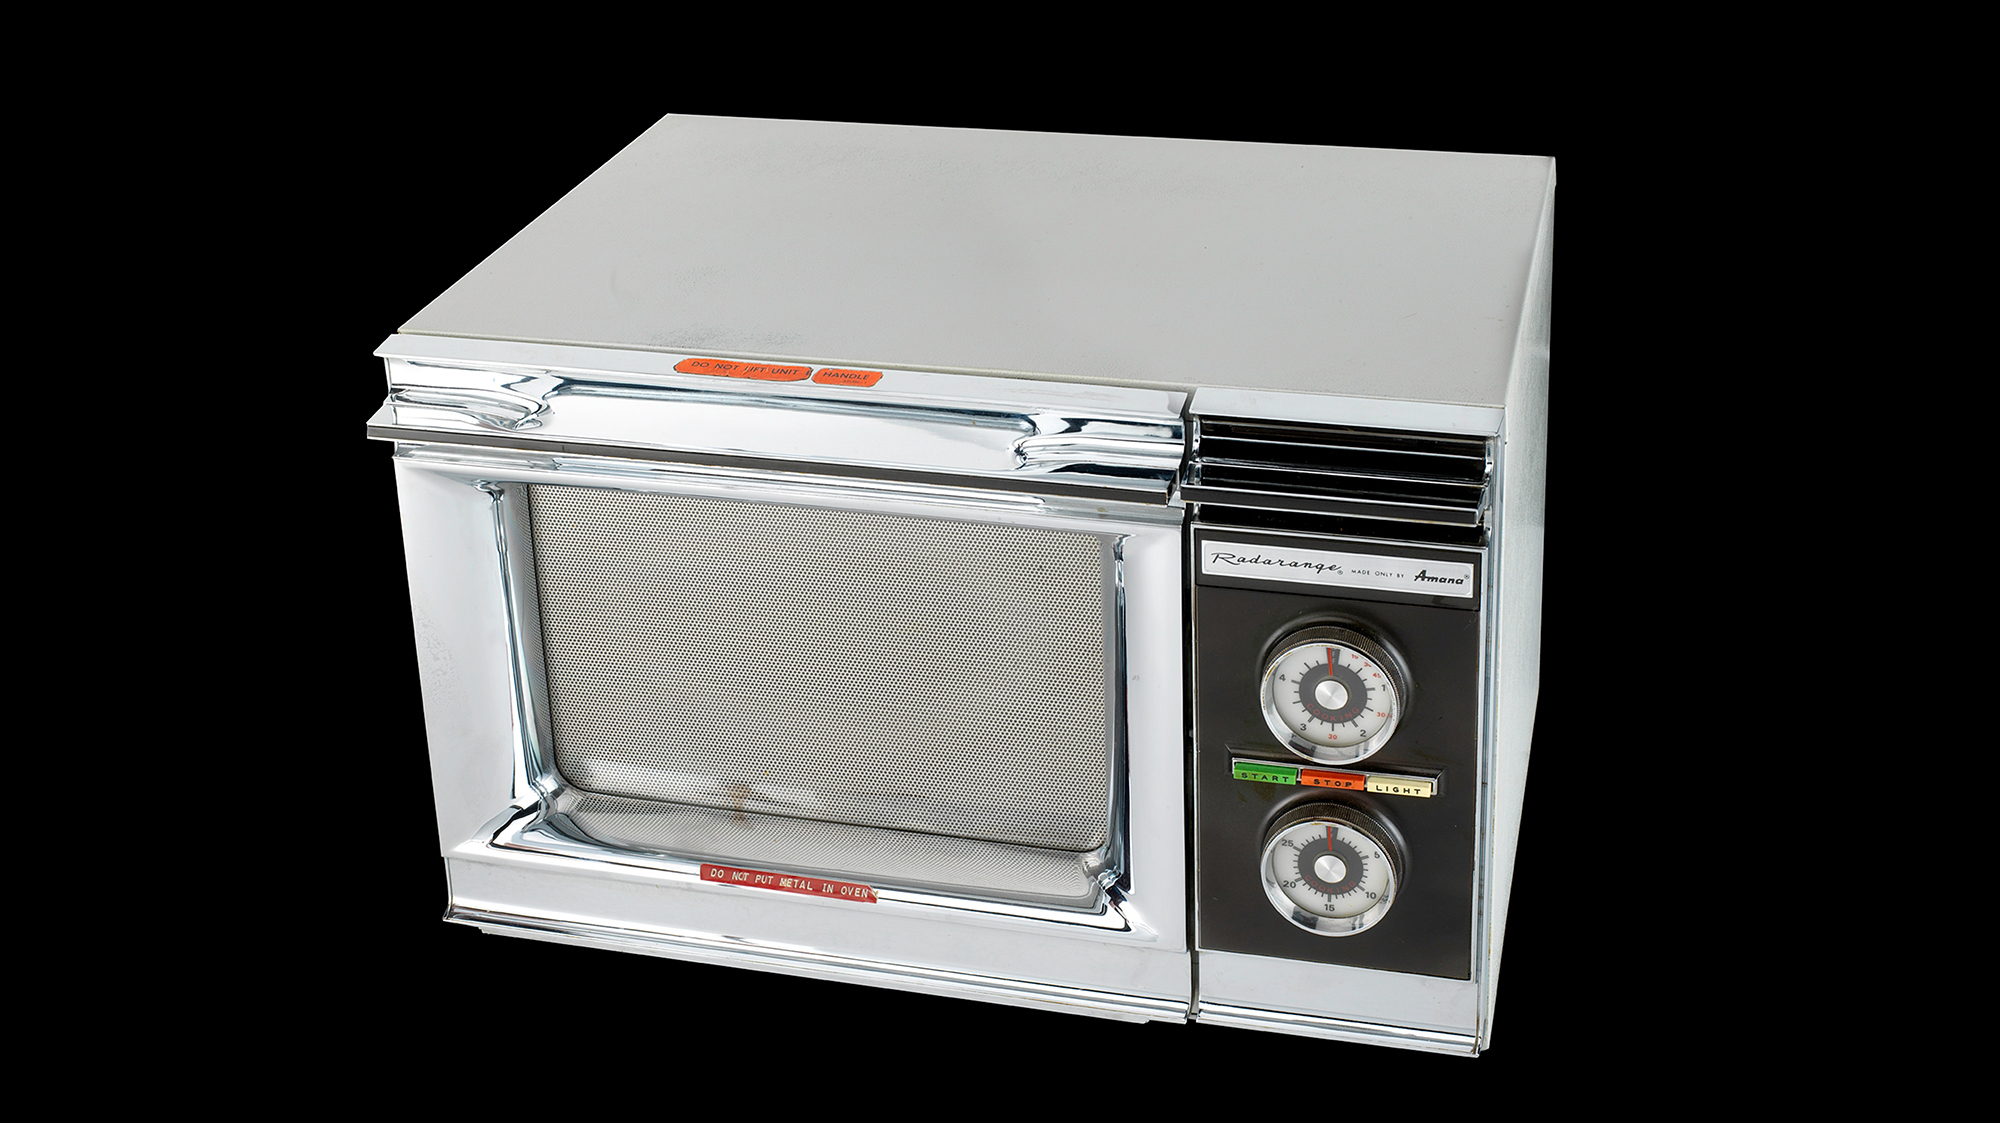 Your Microwave S 50th Anniversary Is